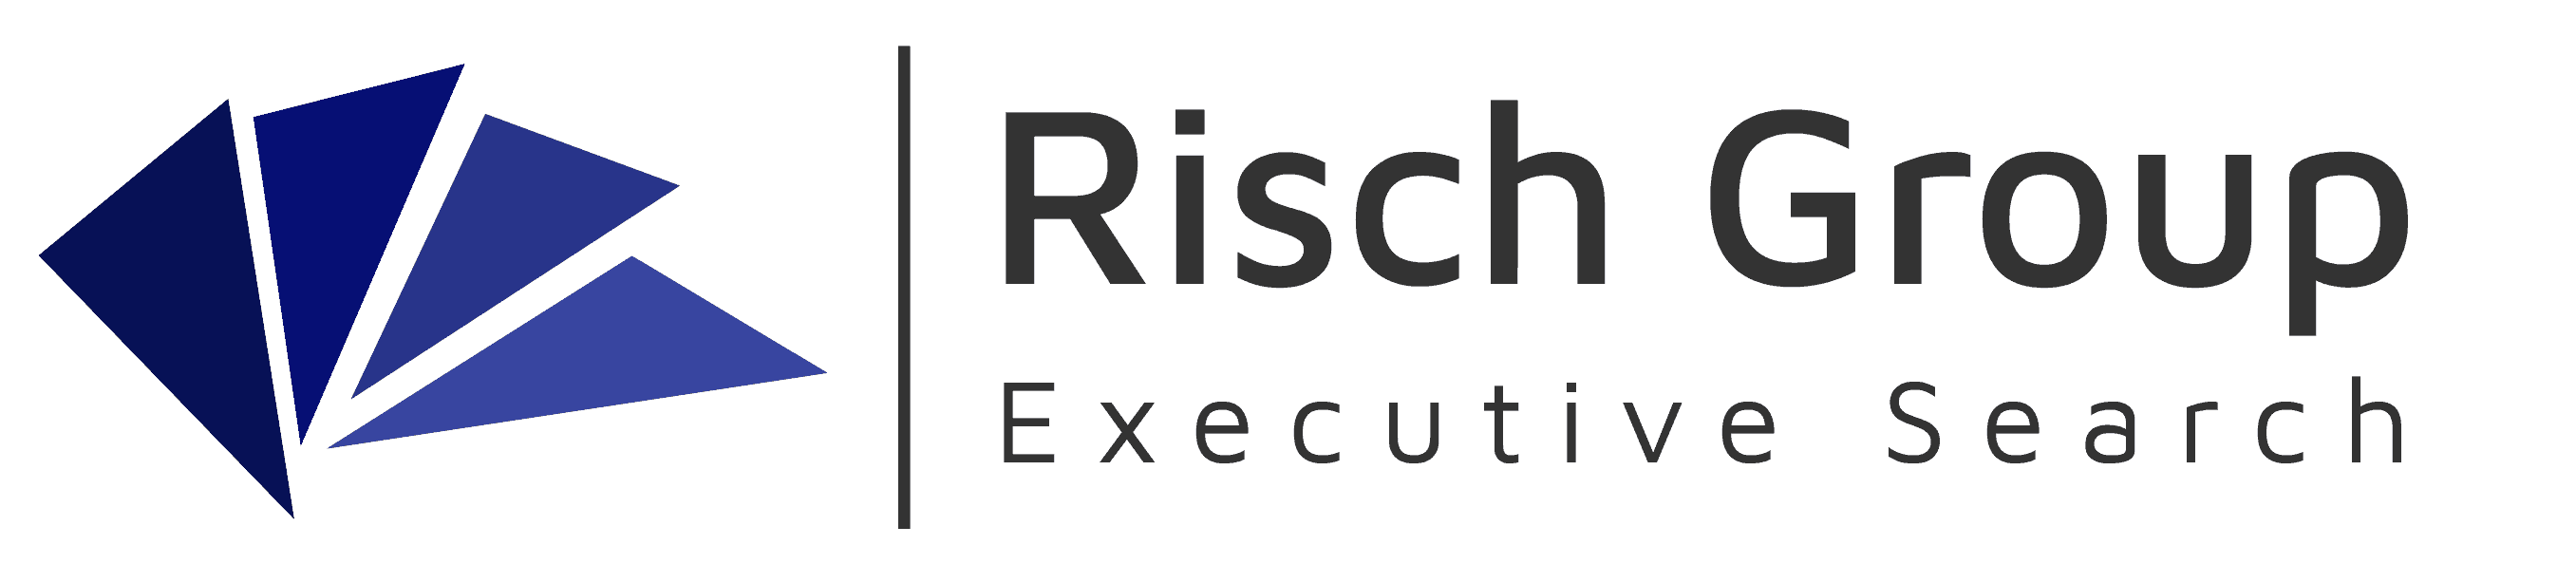 Risch Group